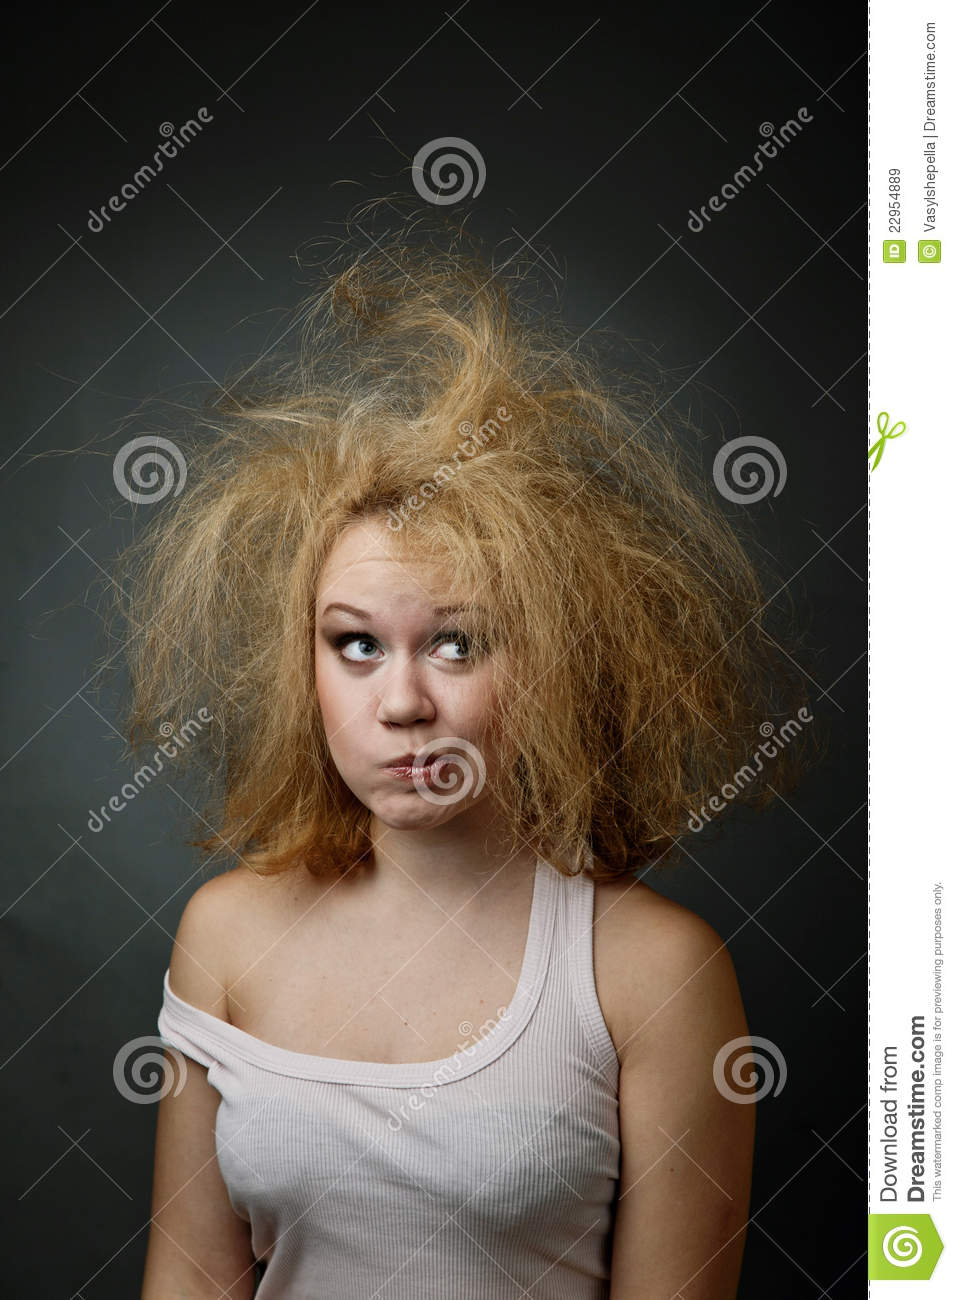 Unkempt Girl Royalty Free Stock Images - Image: 22954889